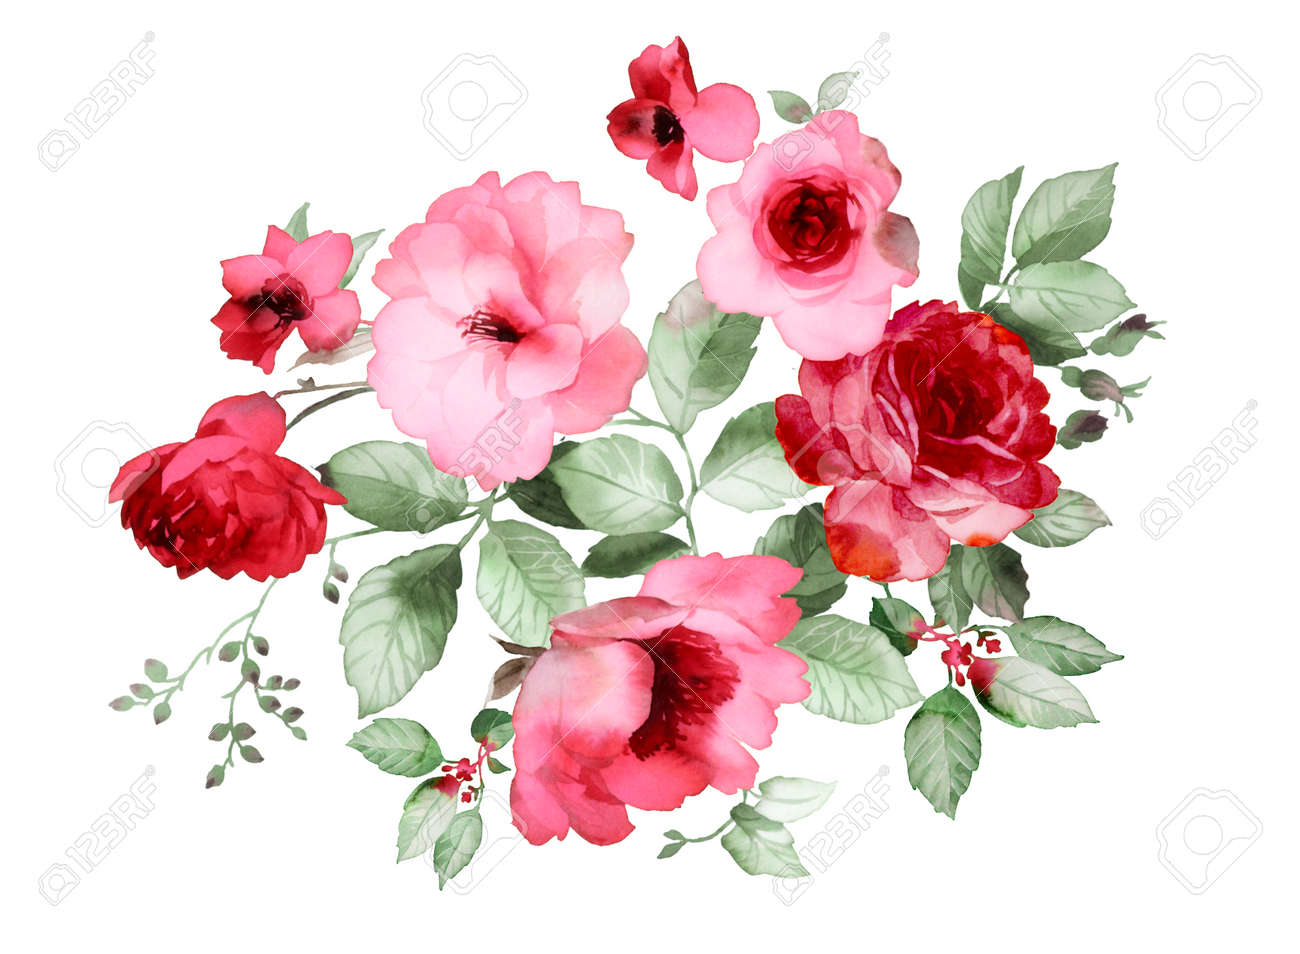 Color illustration of flowers in watercolor paintings stock photo color illustration of flowers in watercolor paintings stock illustration 50753496 mightylinksfo